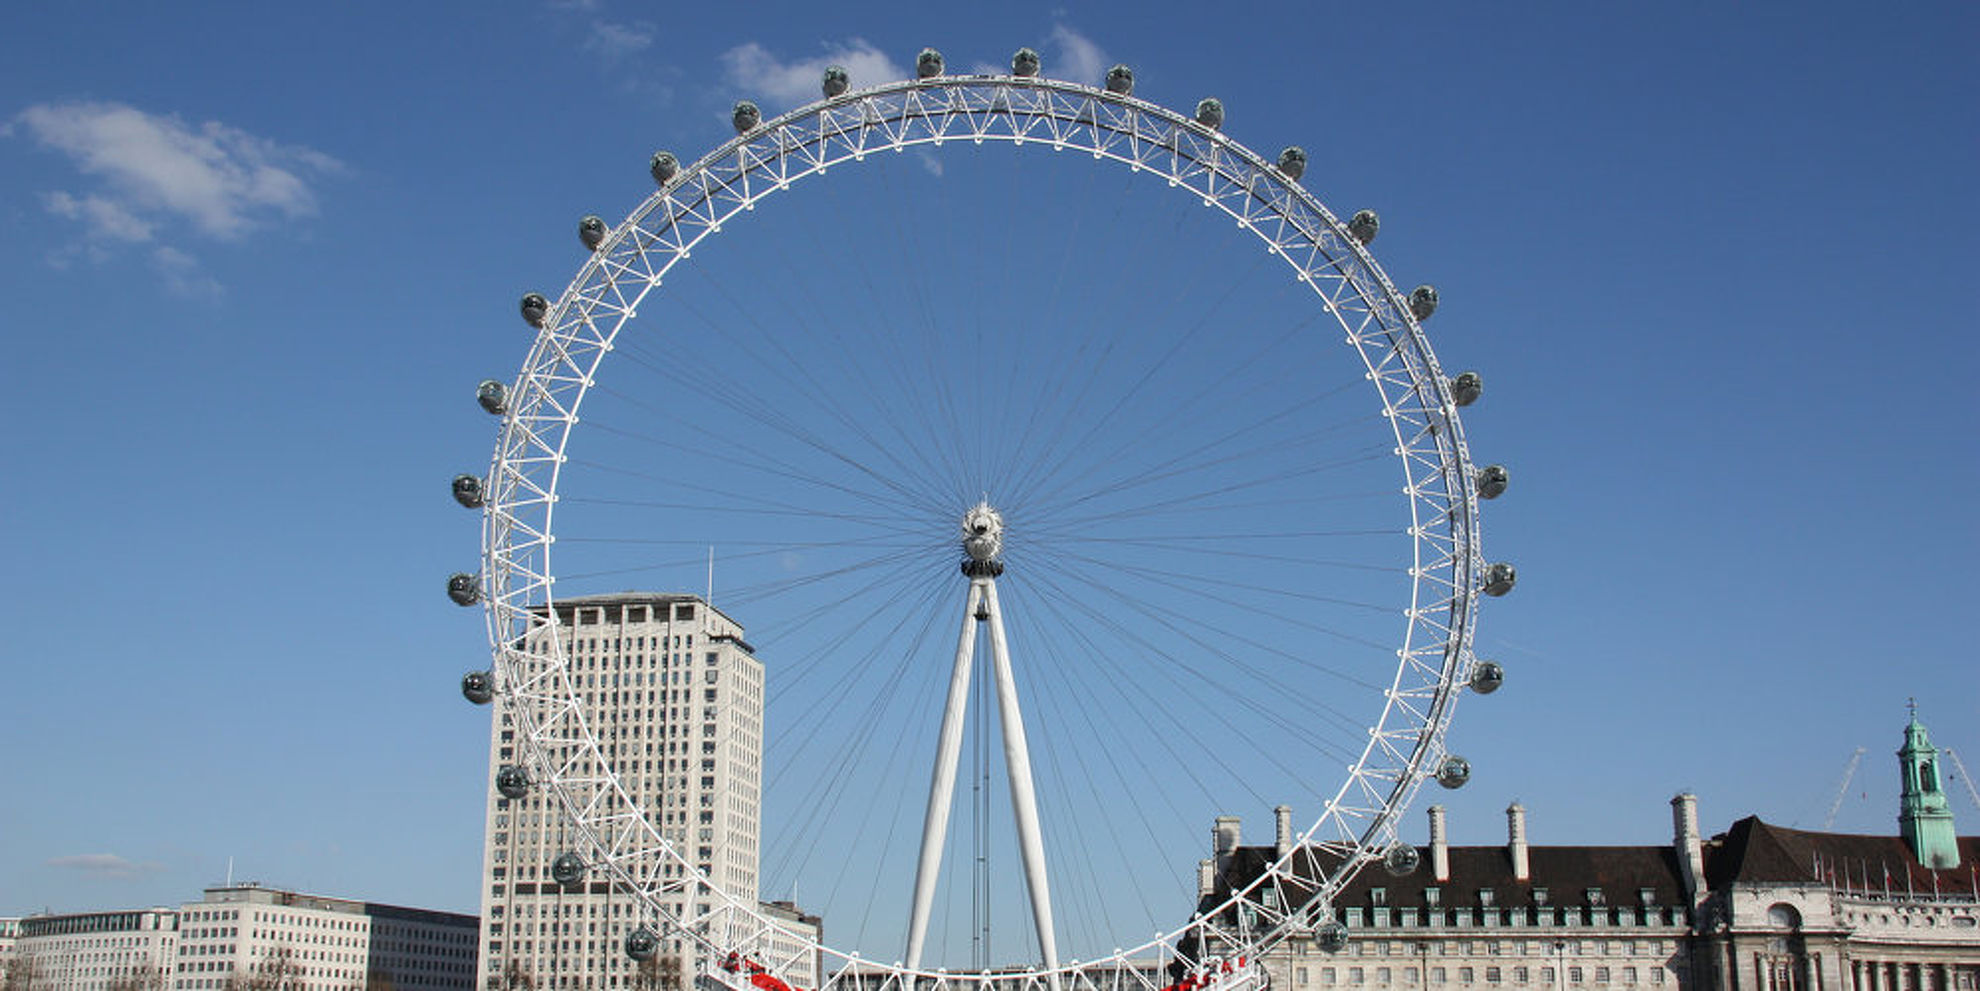 Explore The London Eye